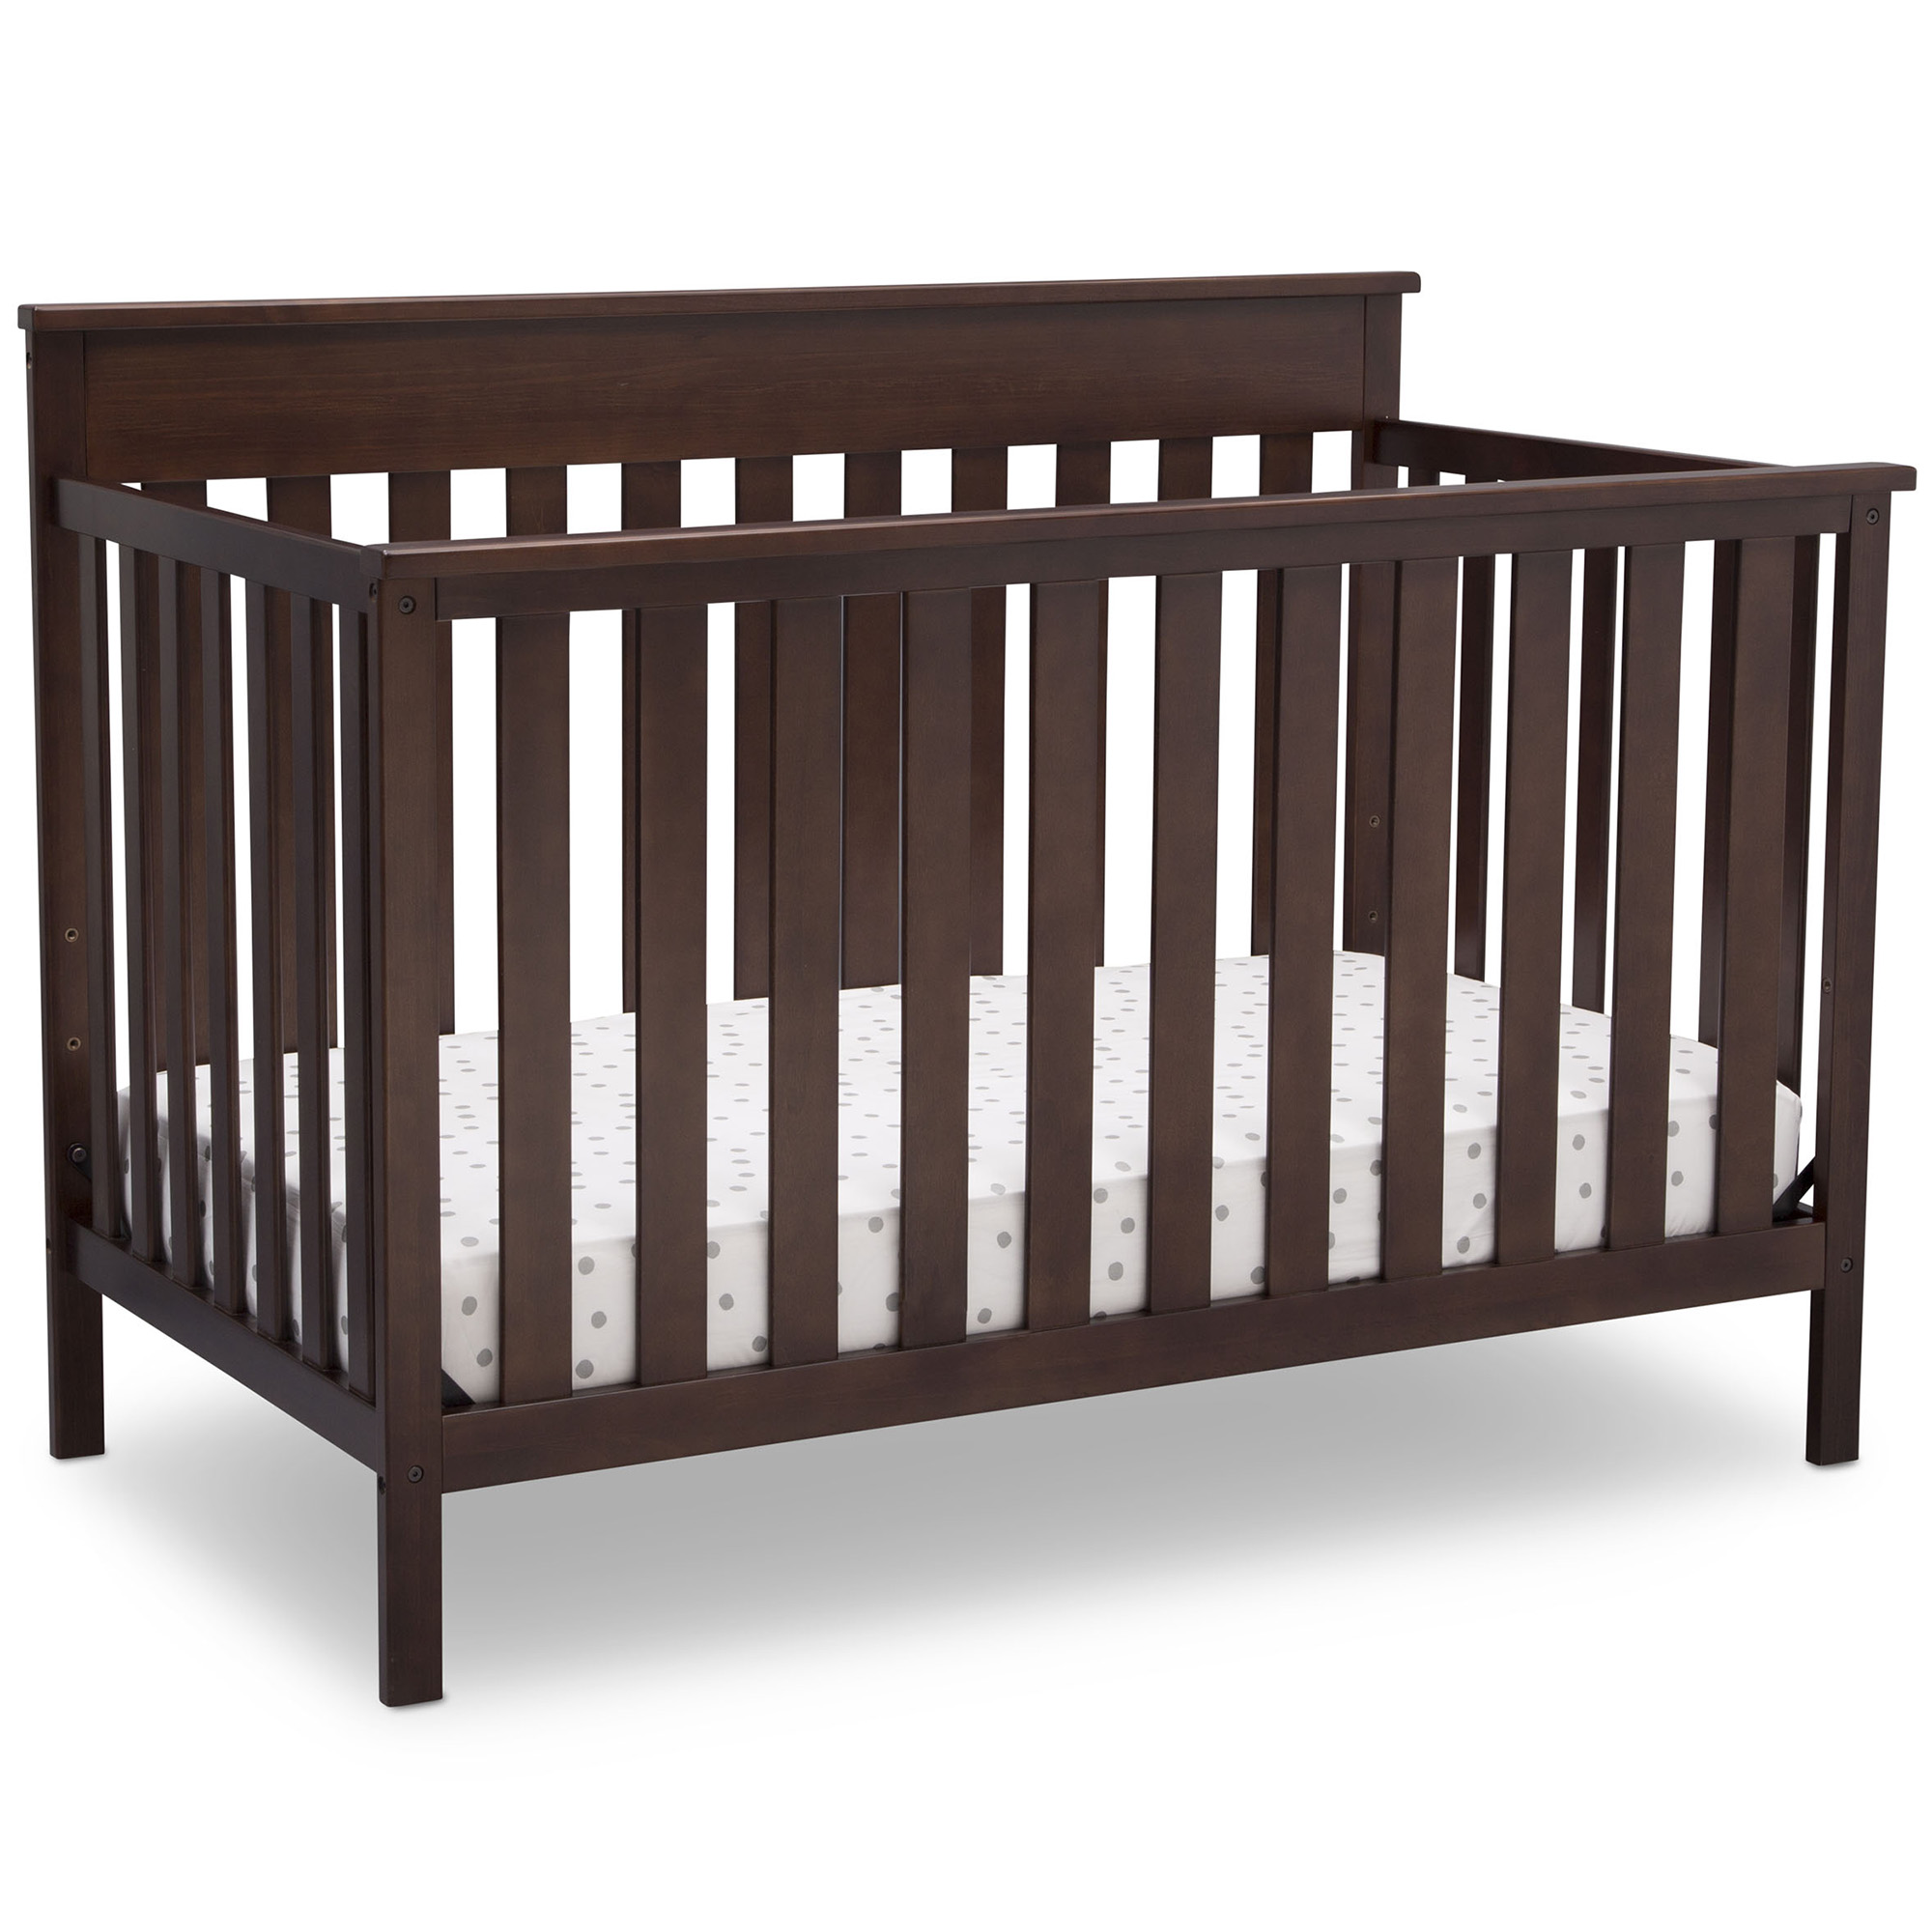 Best Baby Cribs - Delta Children Kingswood 4-in-1 Convertible Baby Crib, Walnut Review